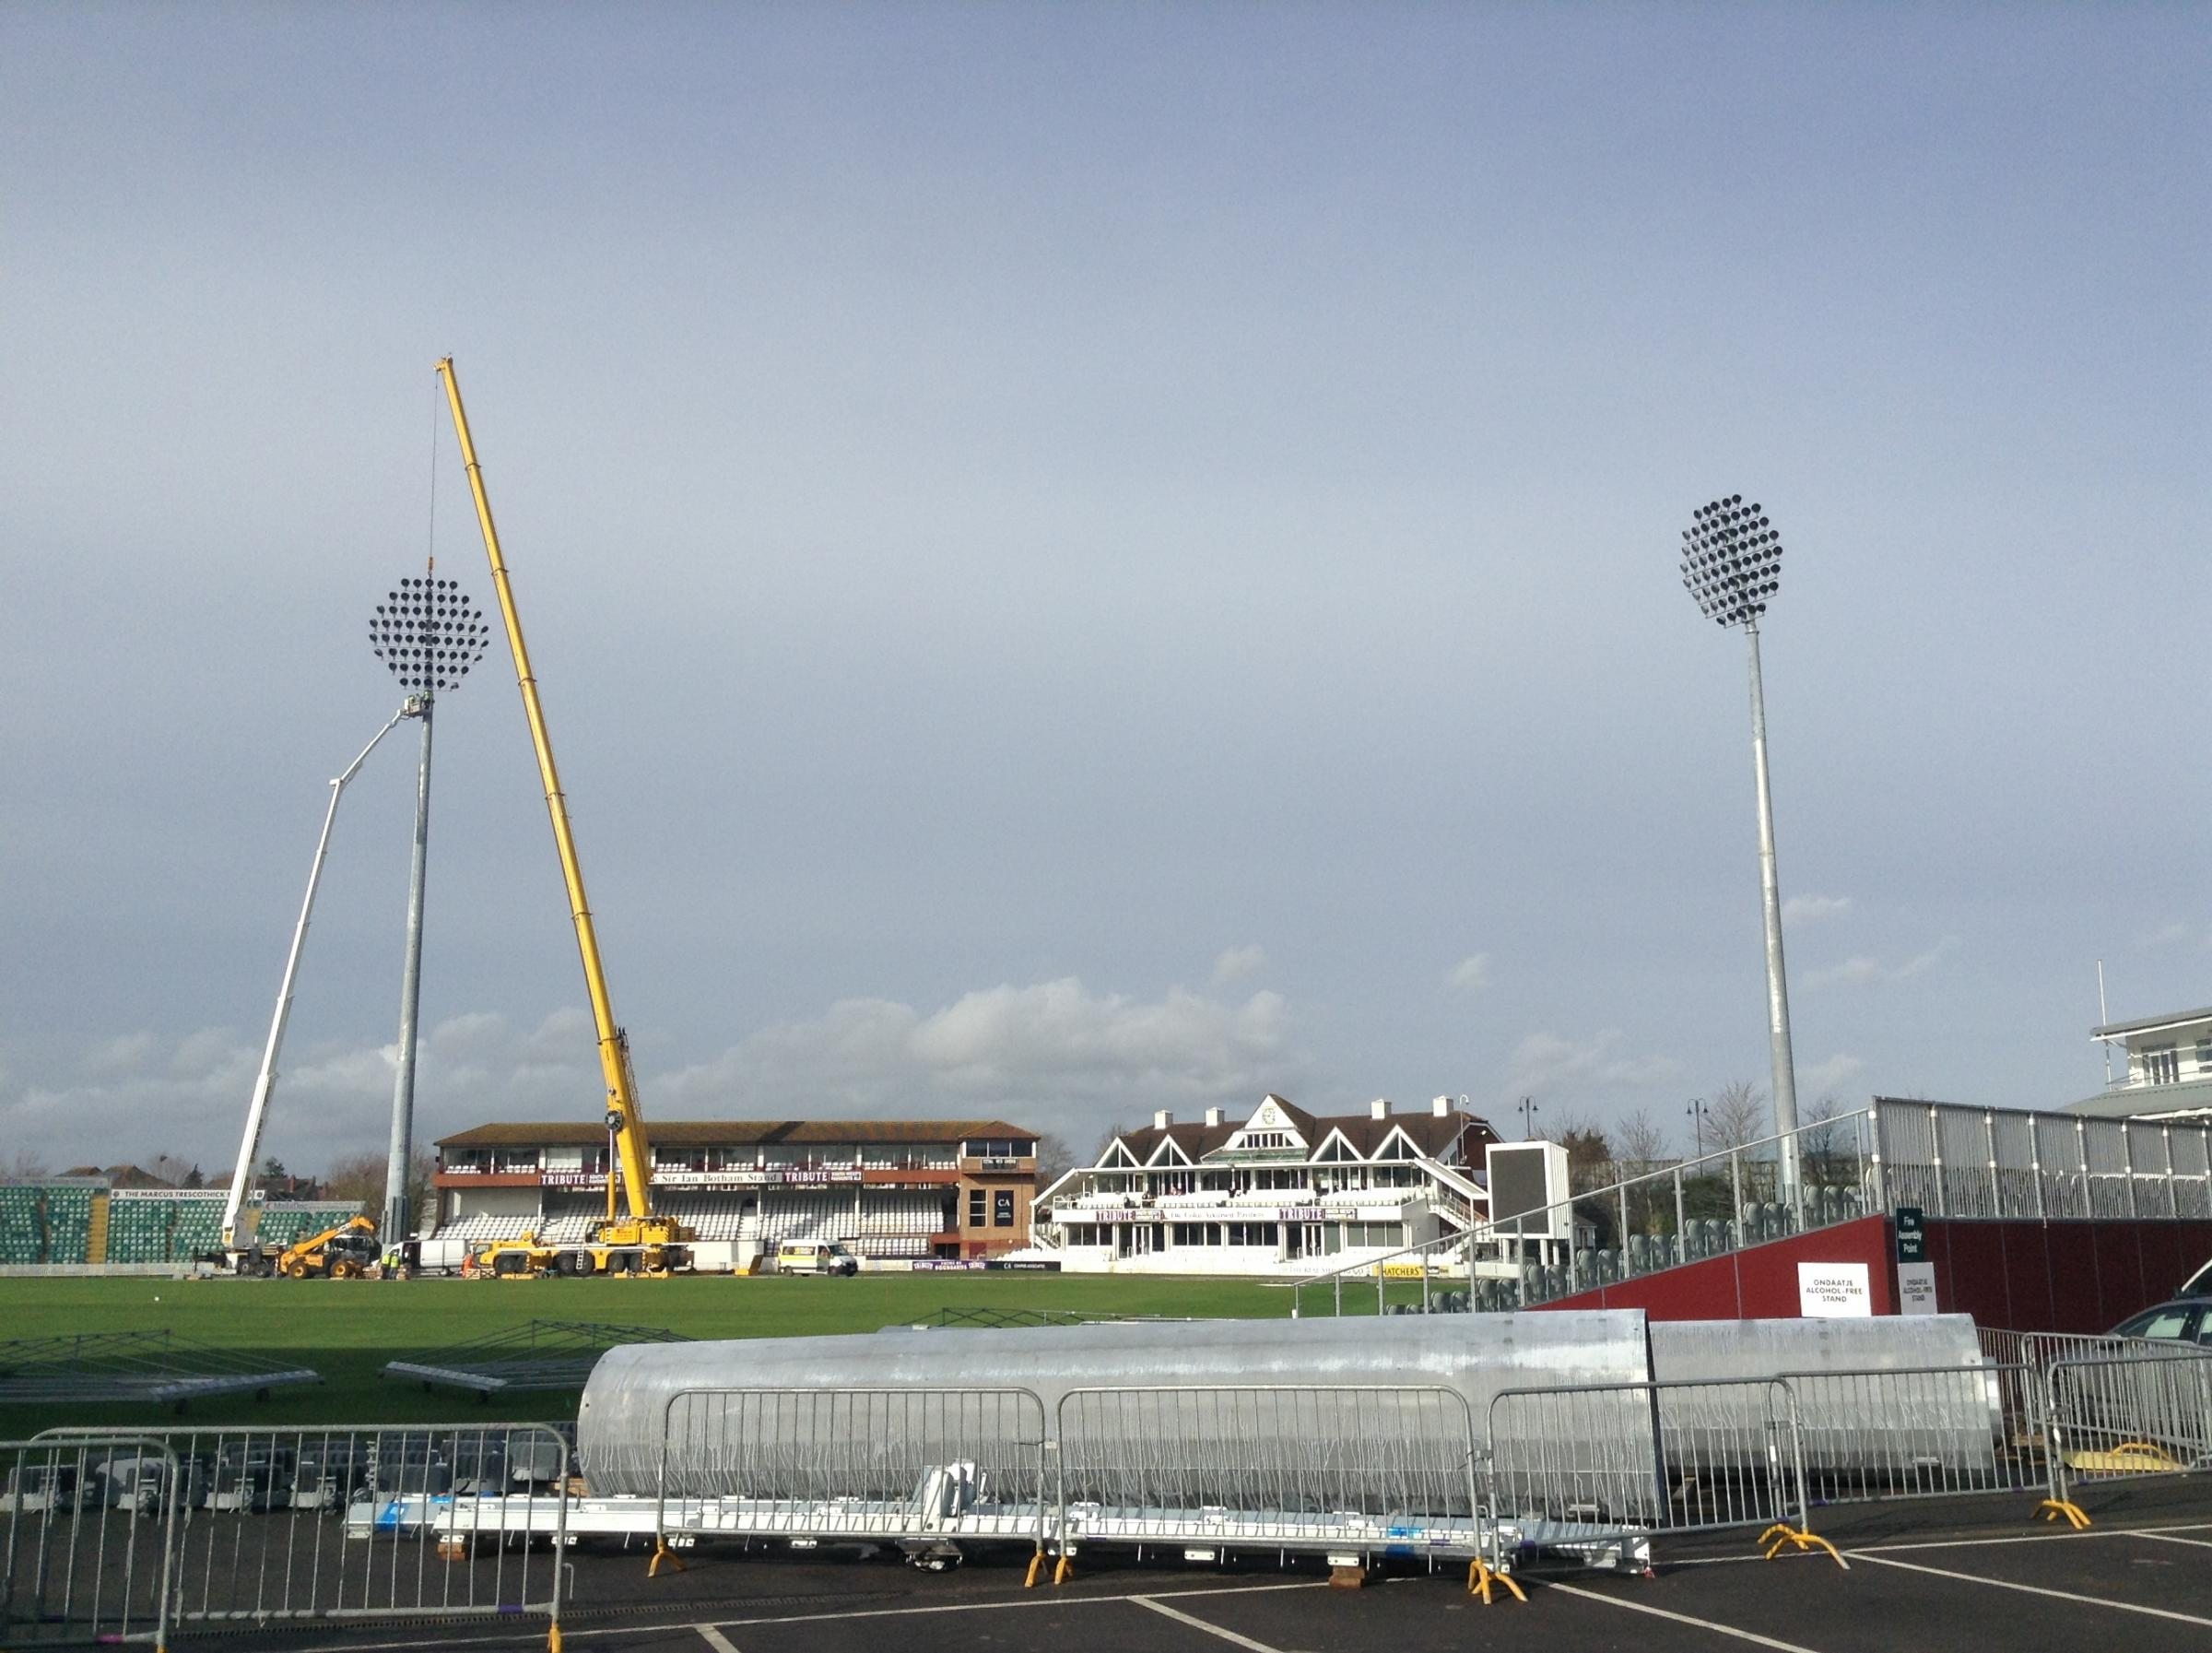 The second floodlight is installed at the Cooper Associates County Ground